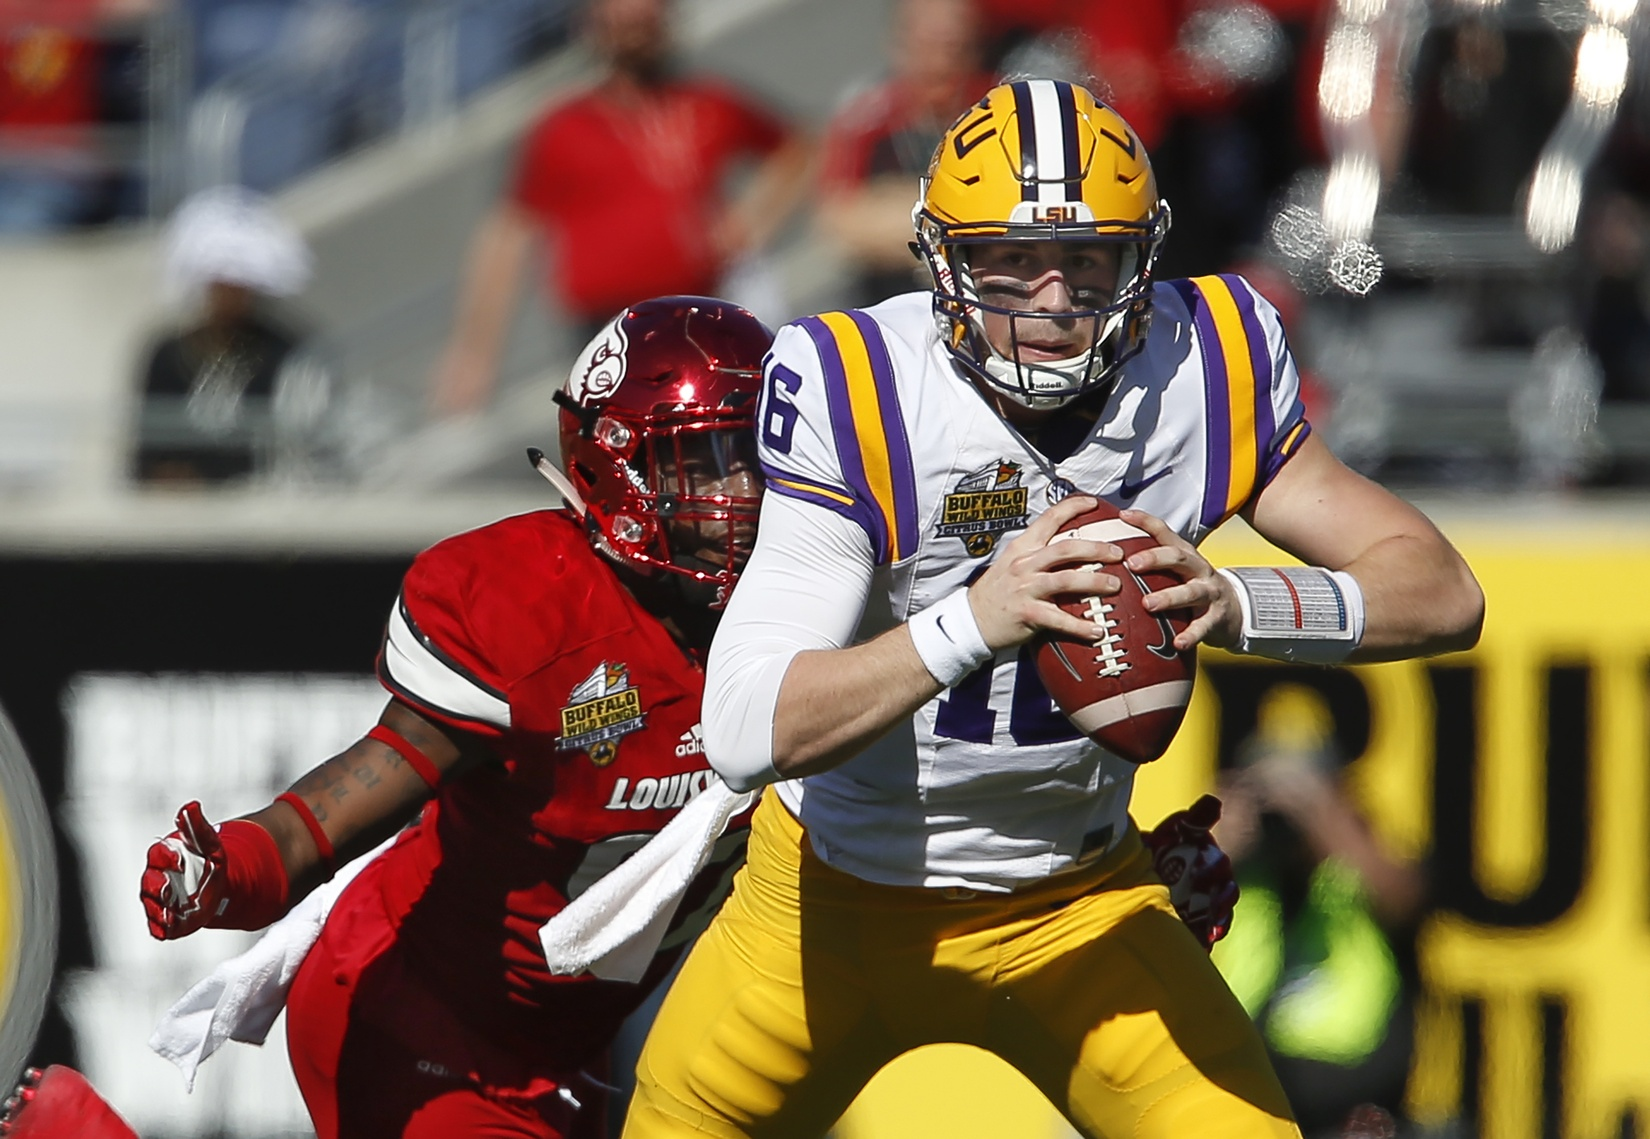 LSU quarterback Danny Etling undergoes minor surgery on back